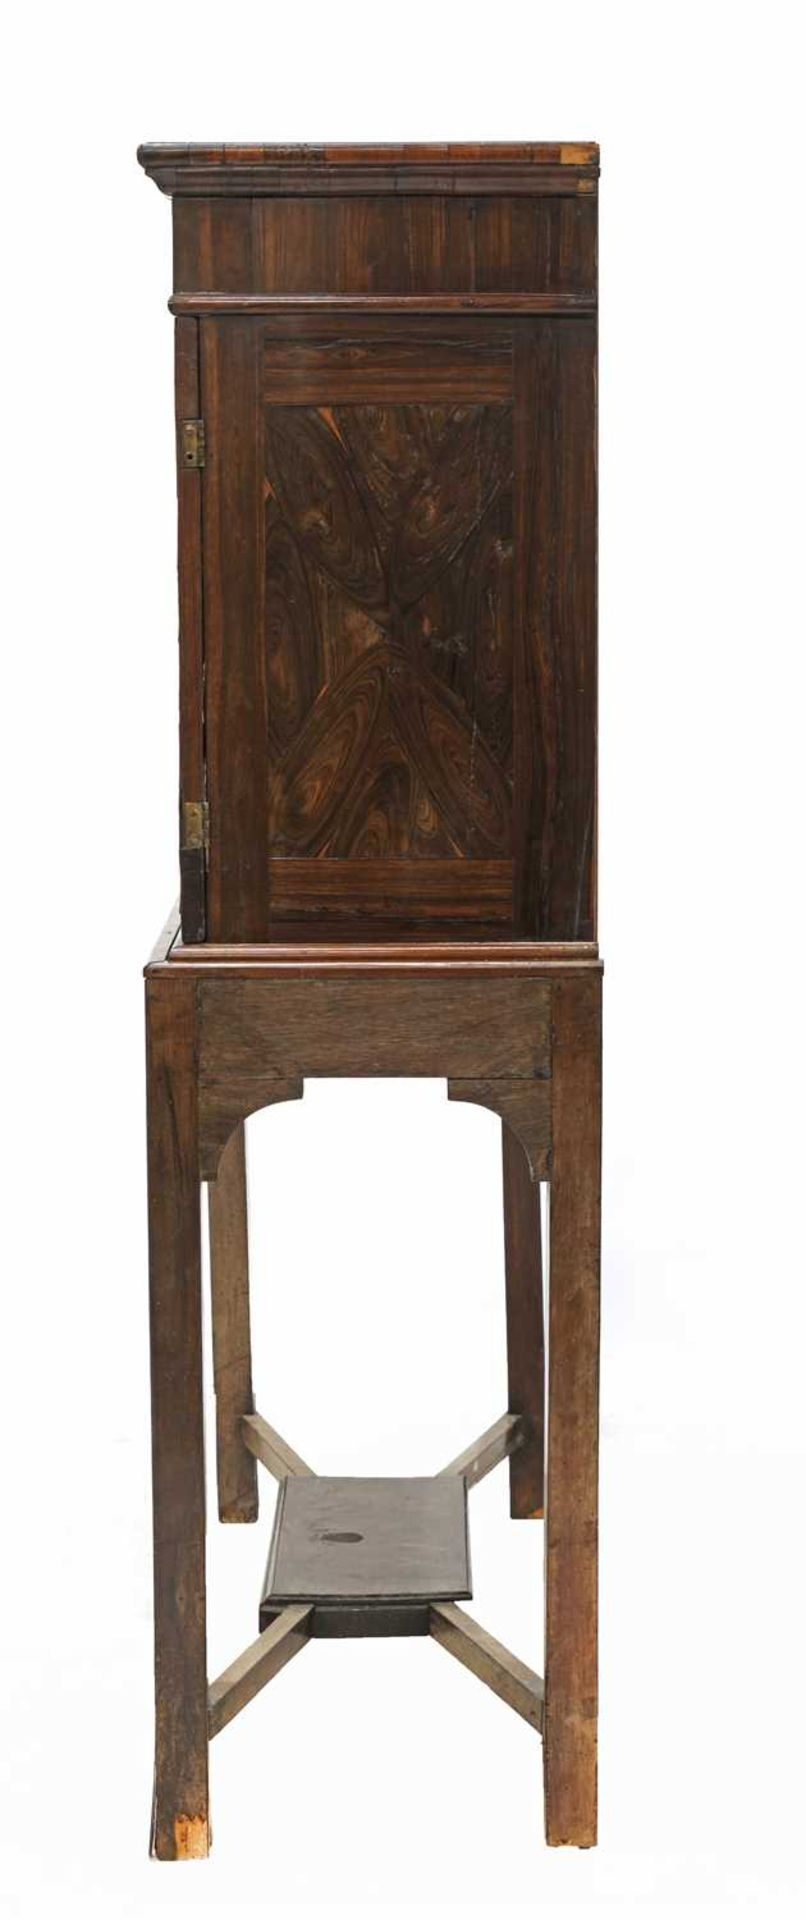 A Queen Anne cocus wood cabinet, - Image 3 of 42